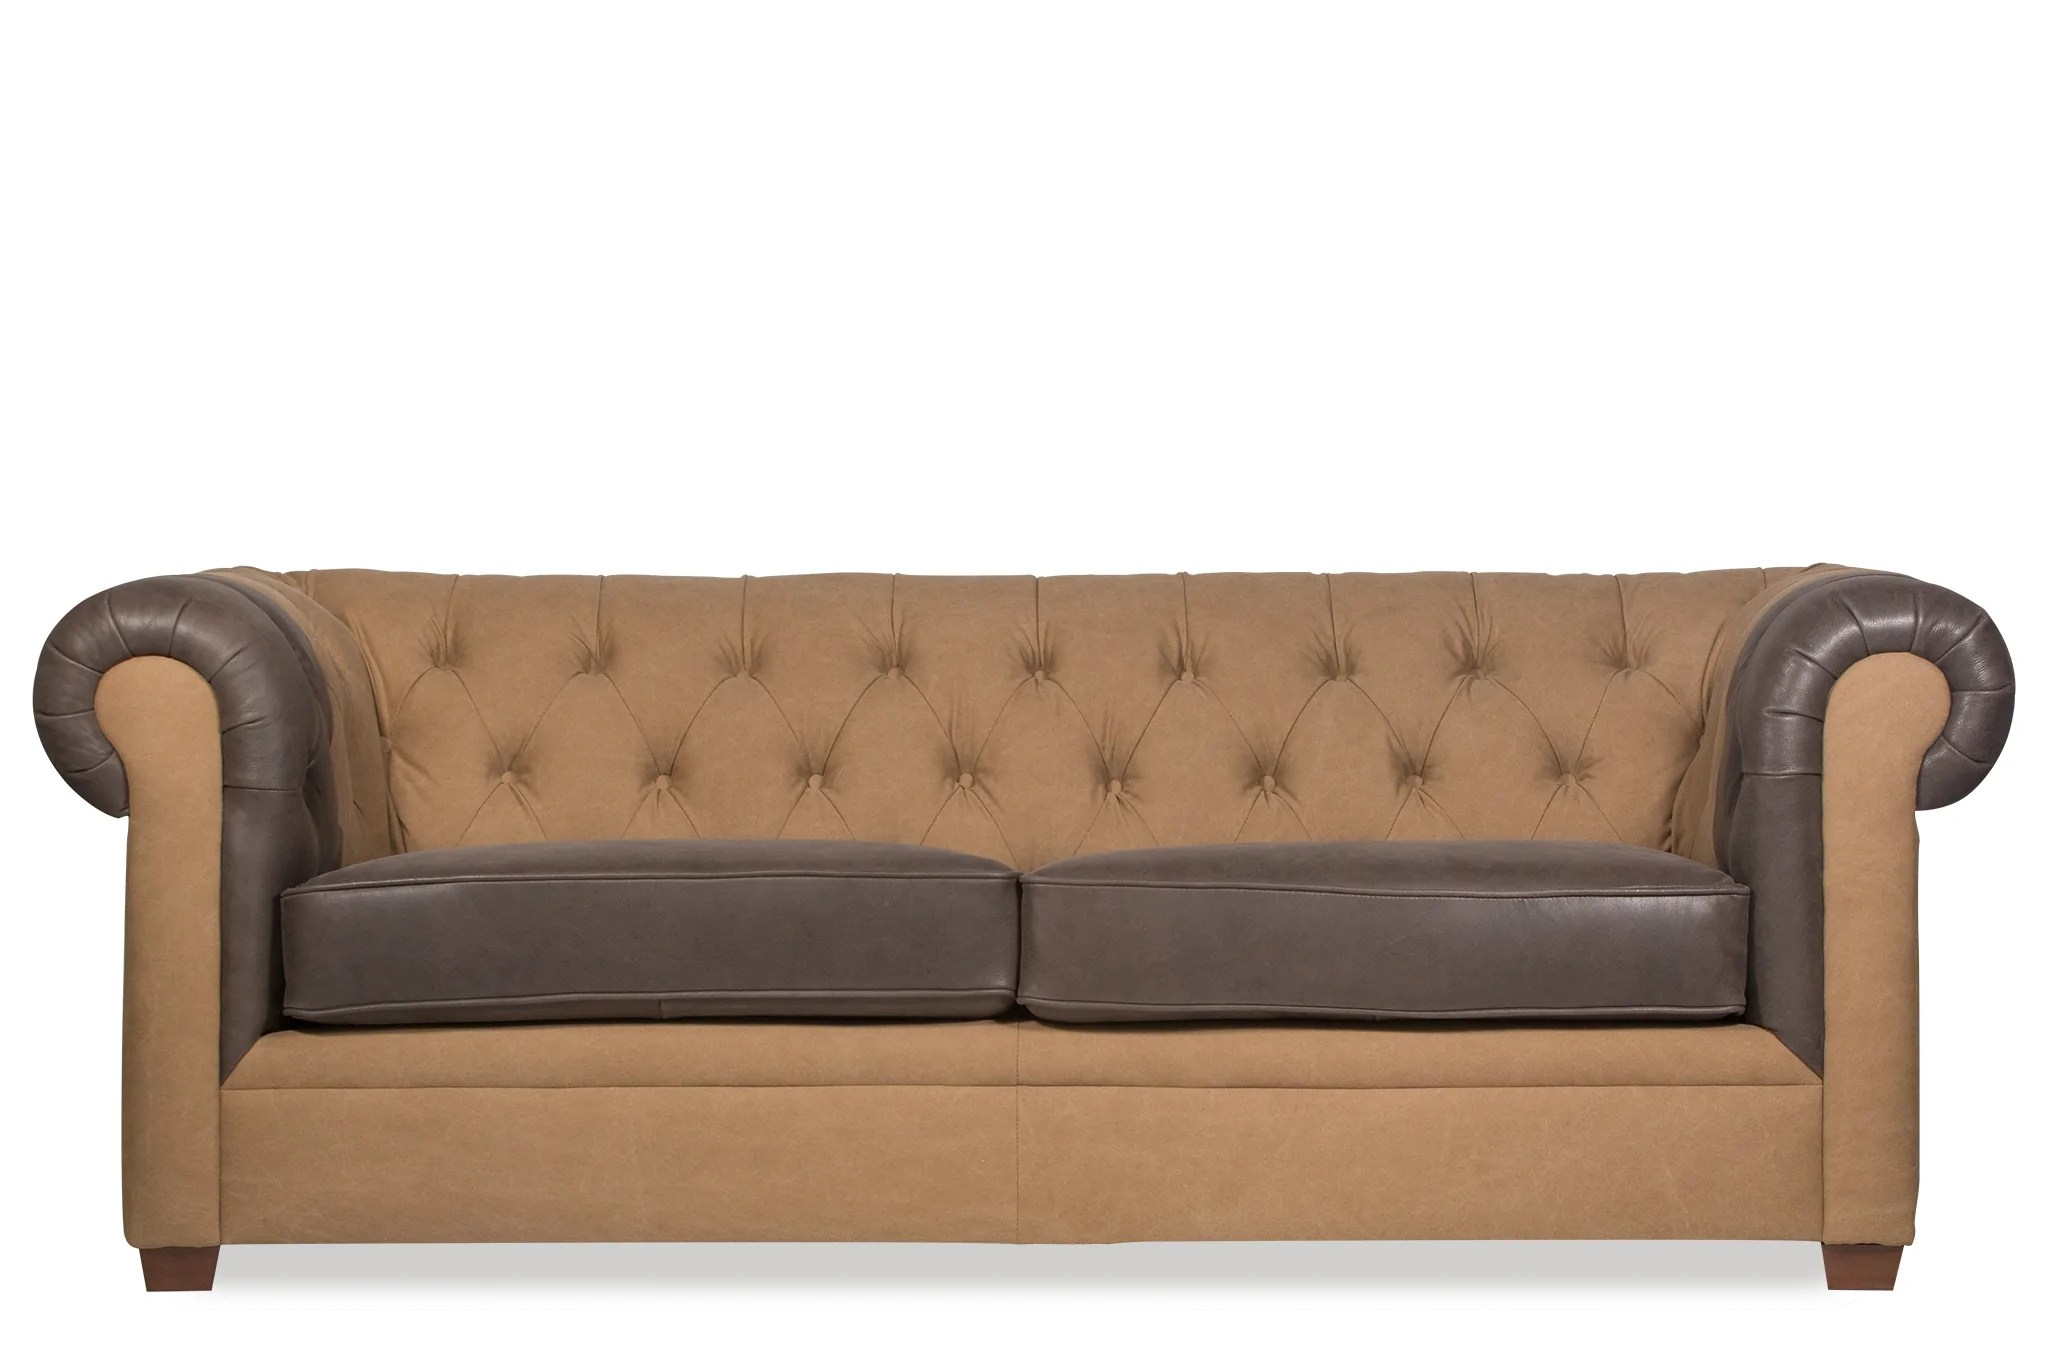 Sofa S Safari Sofa